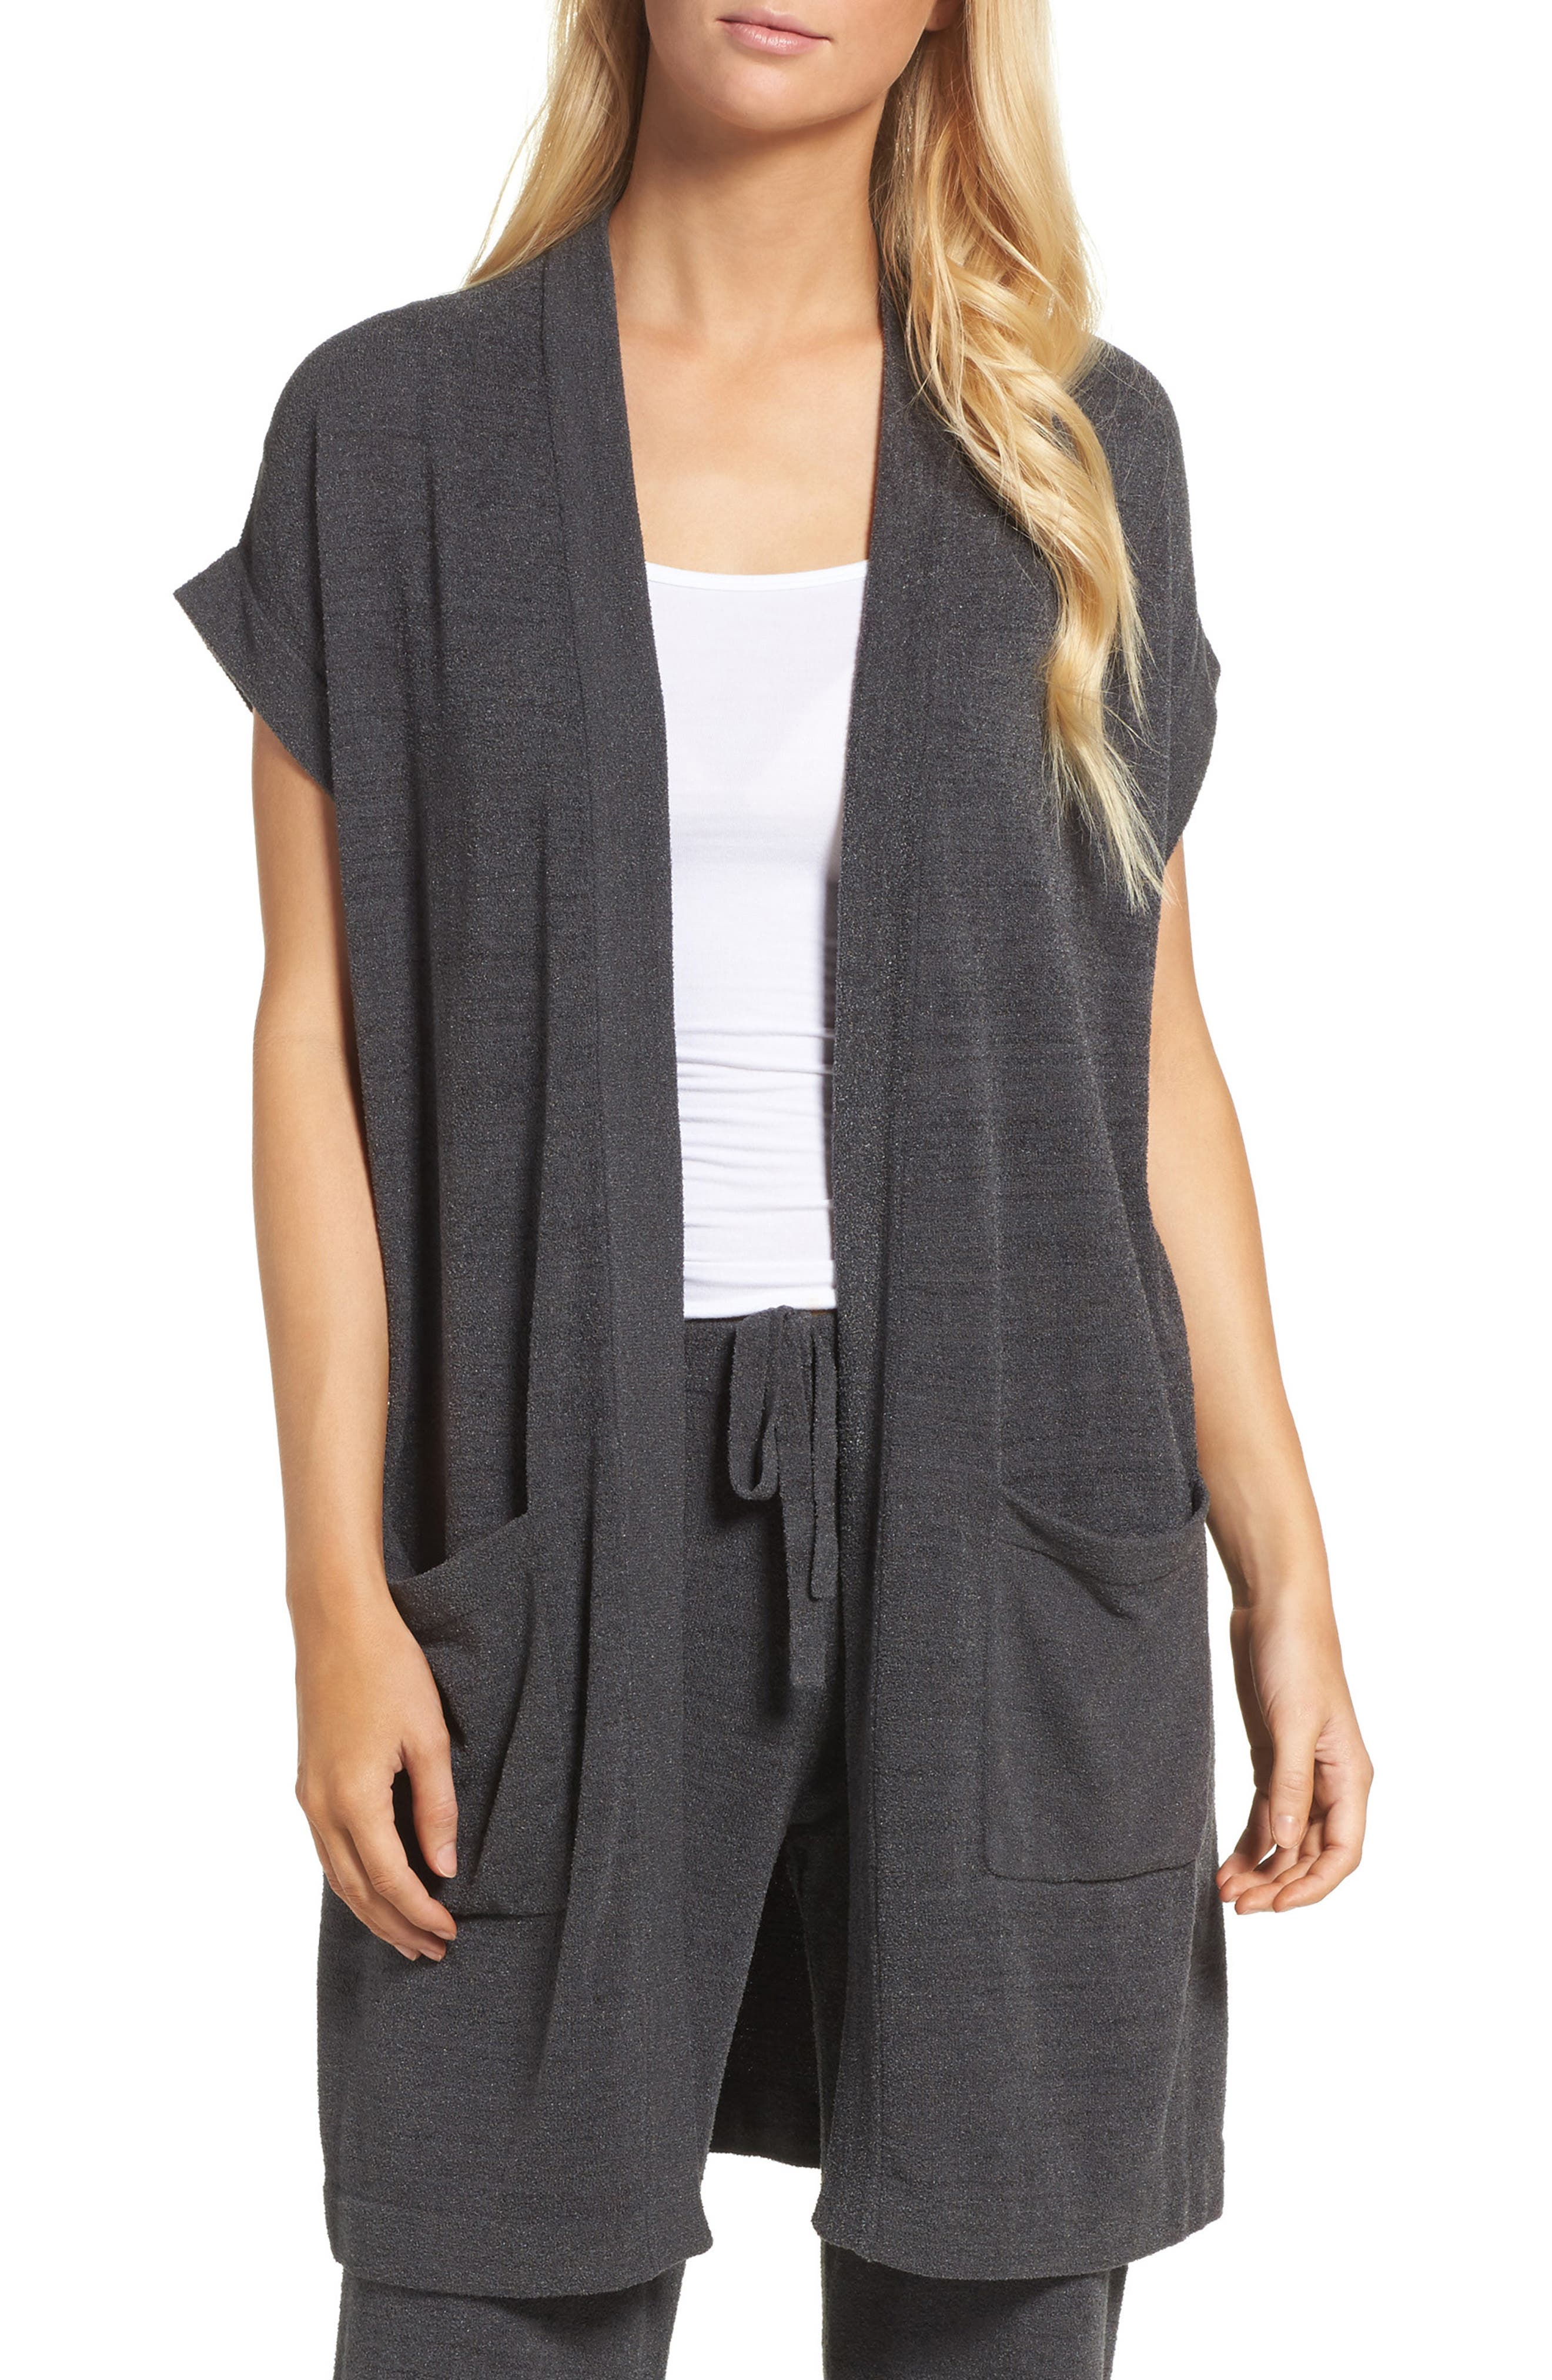 Cozychic Ultra Lite<sup>®</sup> Lounge Cardigan,                         Main,                         color, Carbon